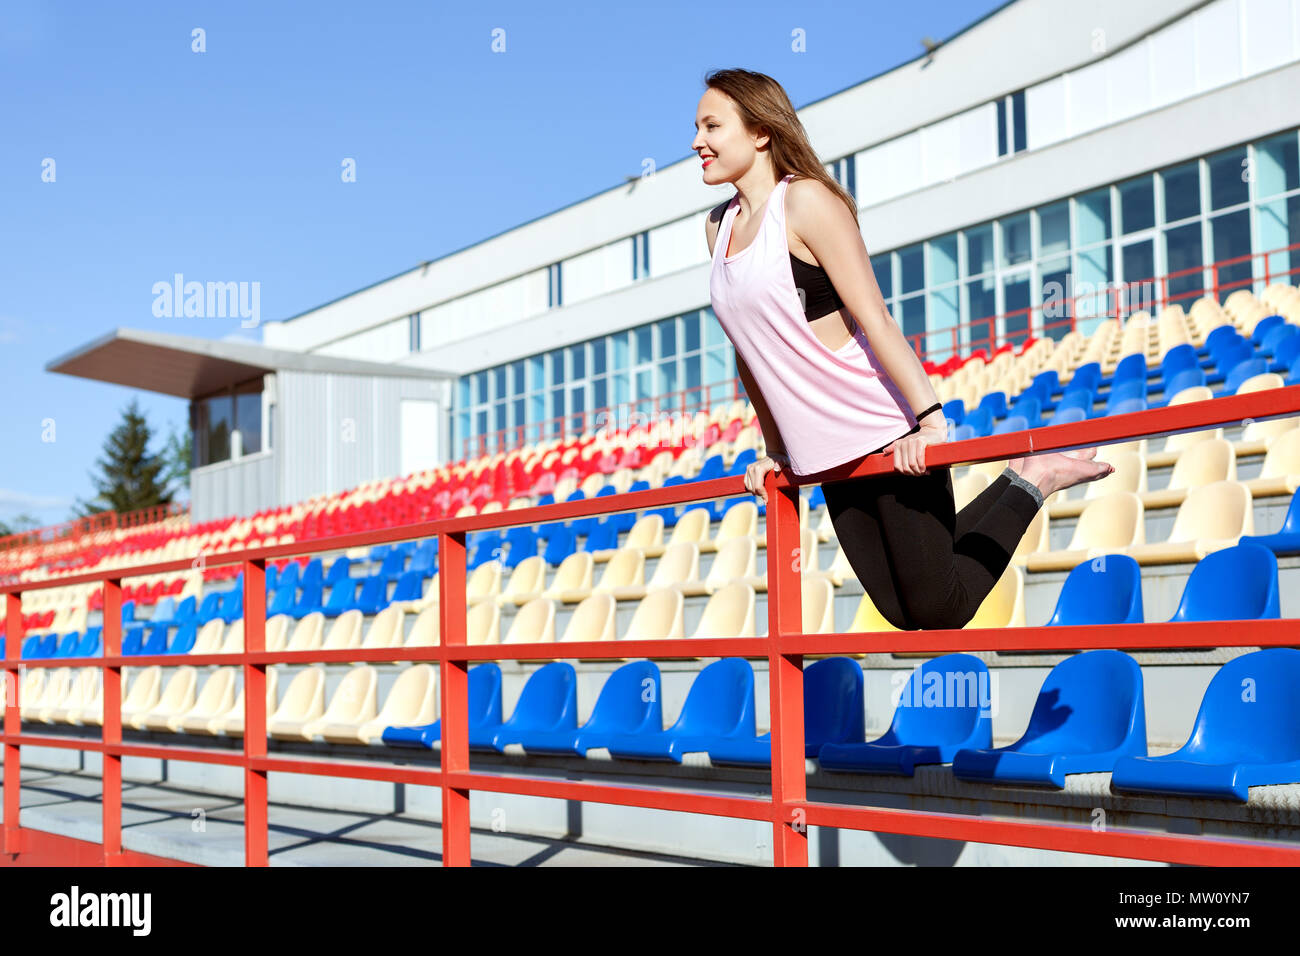 Young woman in sportswear standing on the stadium podium. - Stock Image